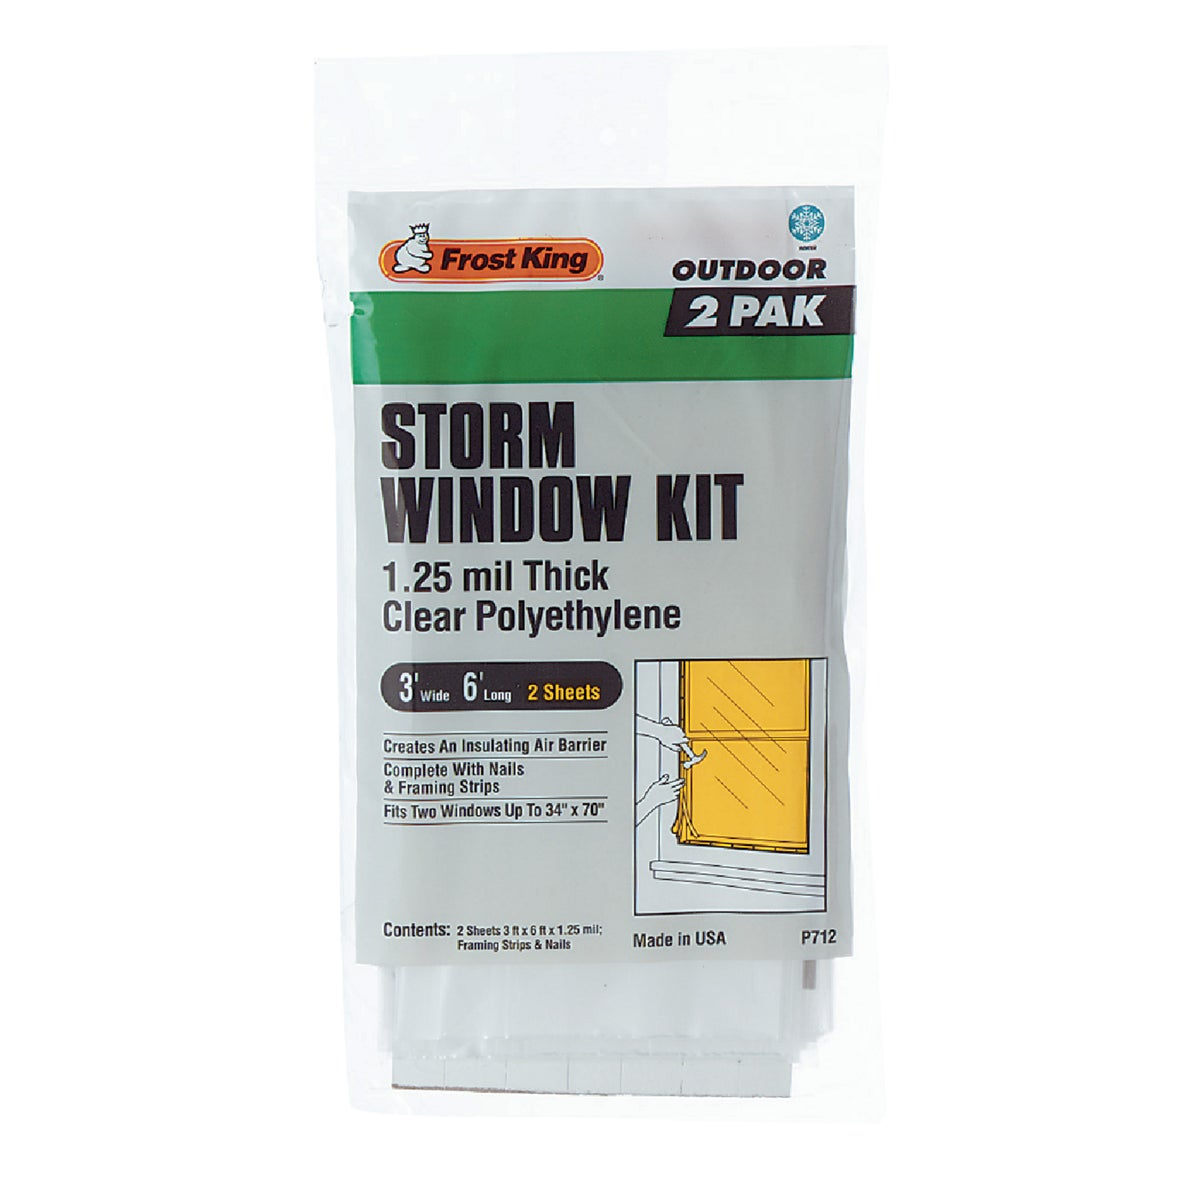 Thermwell Prods. Co. 2PK 3X6 STORM WINDOW KIT P712H